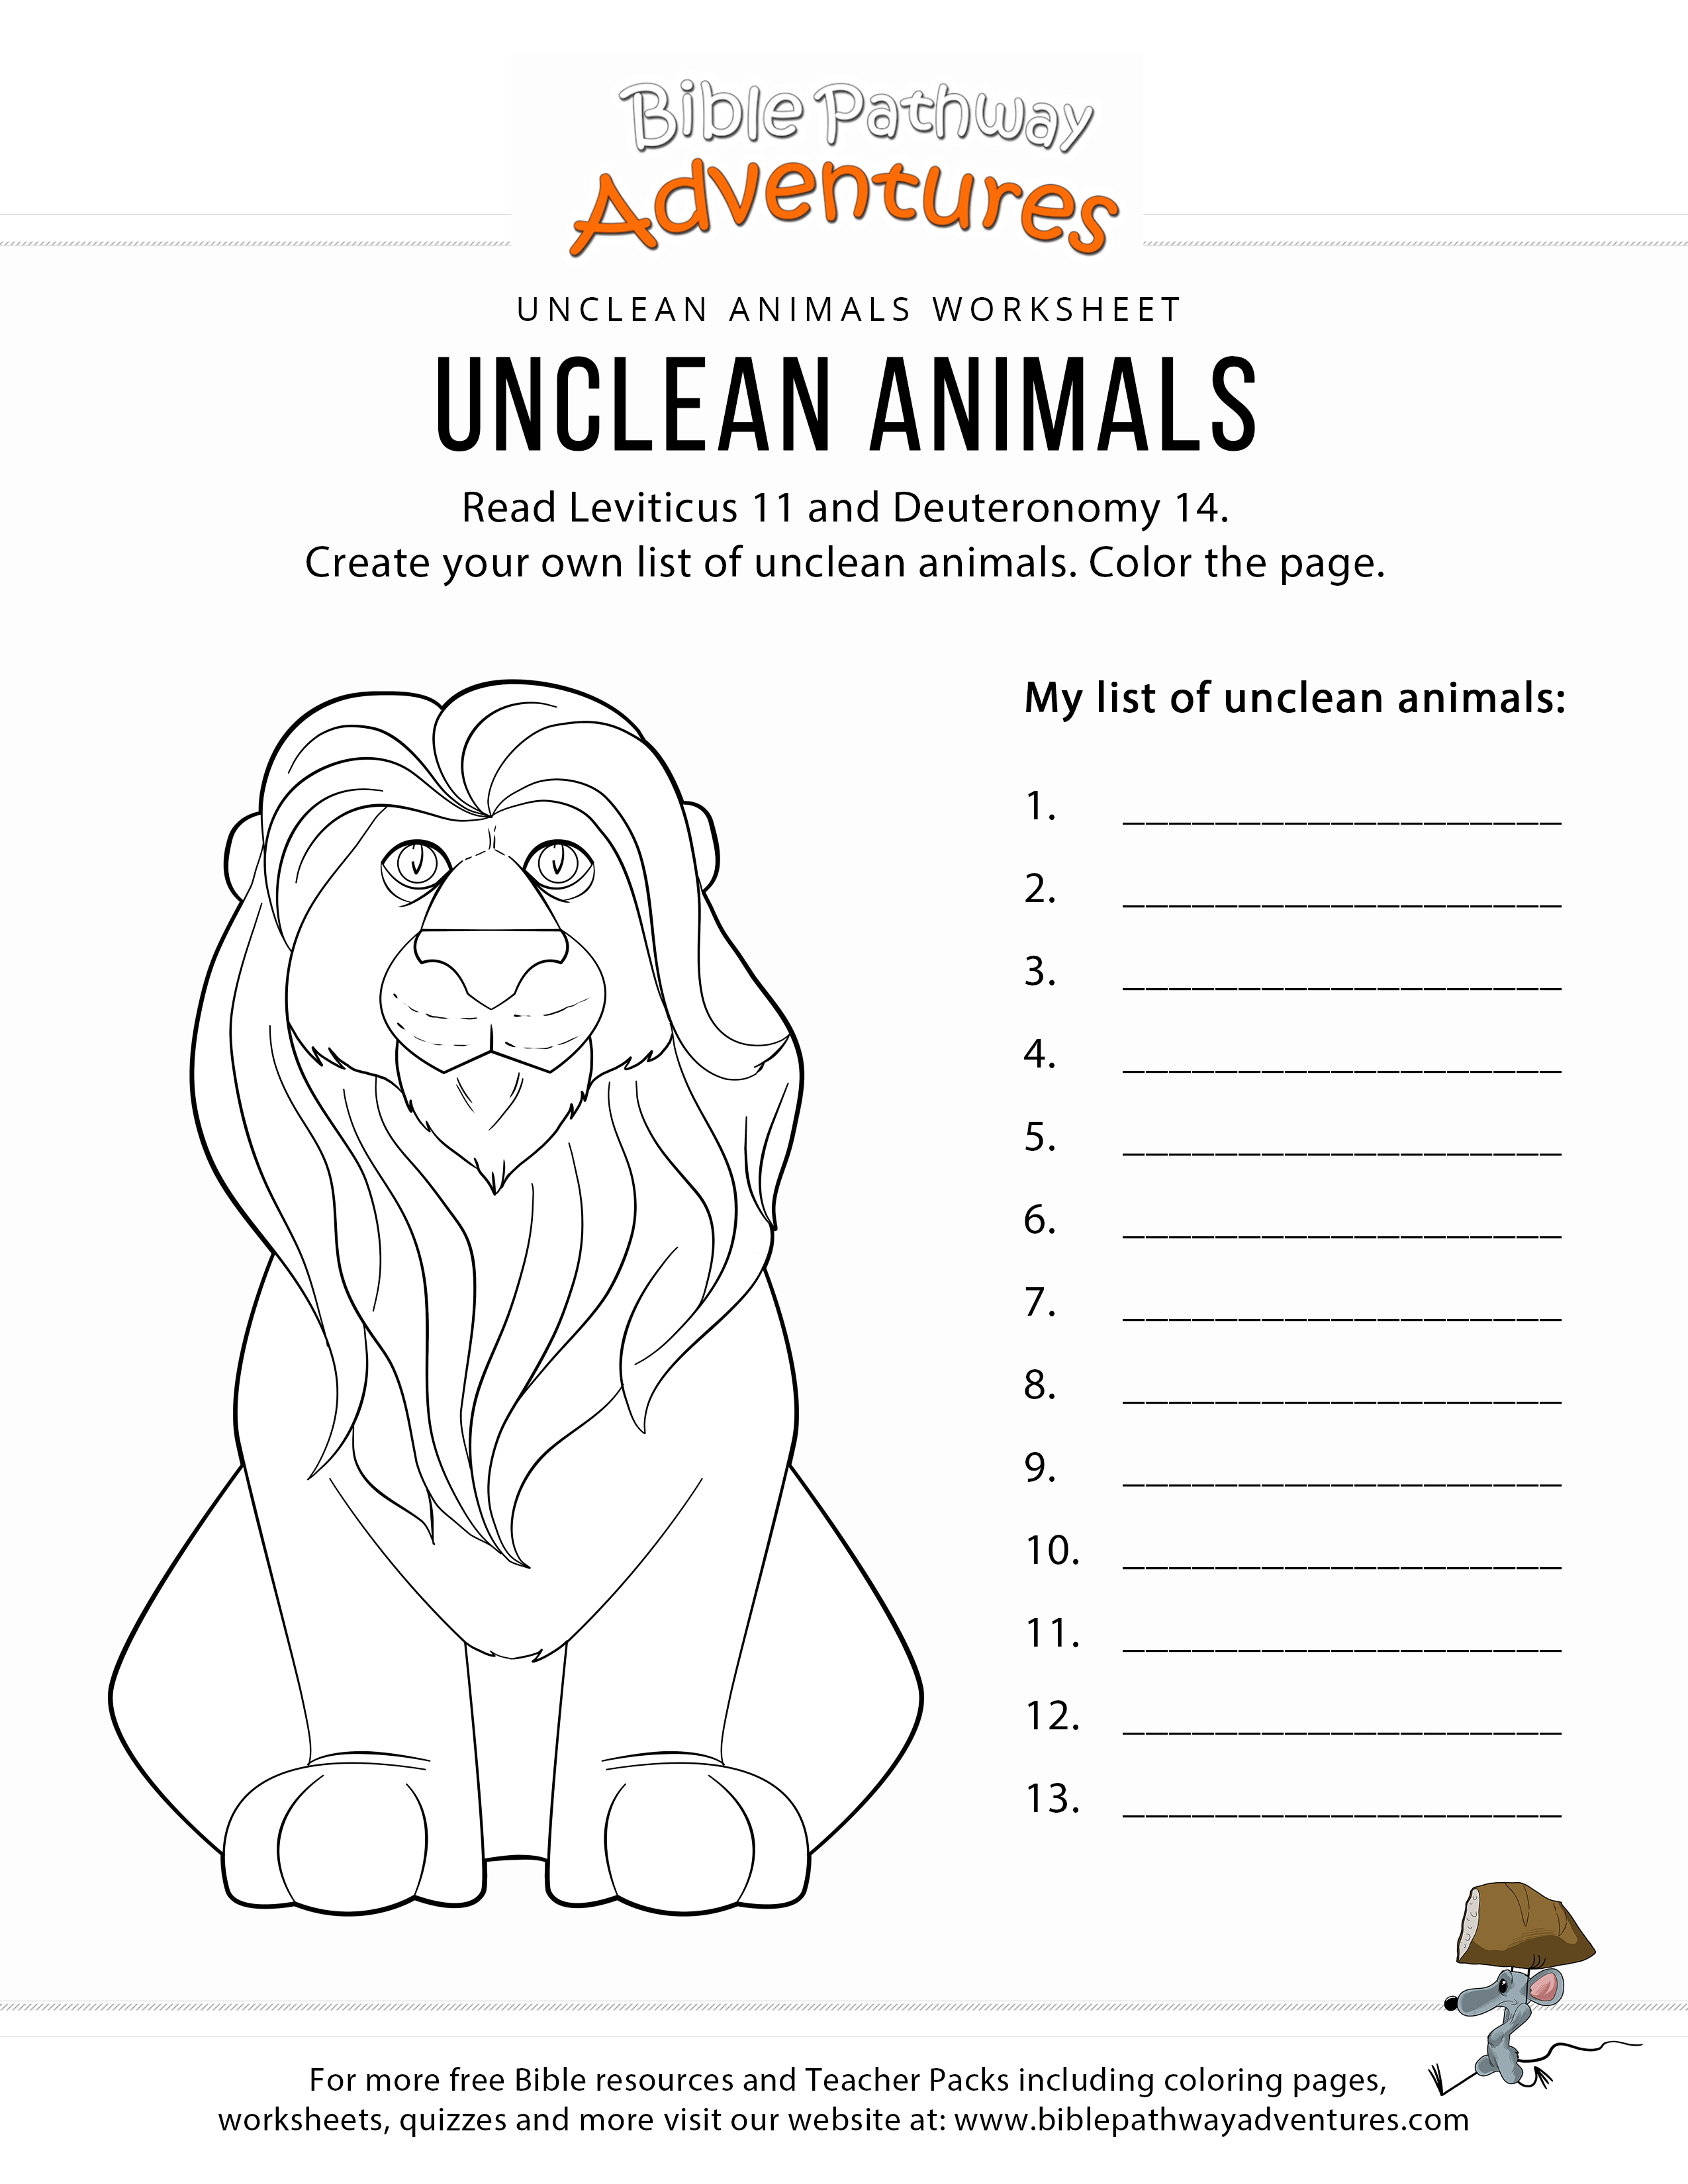 Unclean Animals Worksheet Amp Coloring Page Bible Pathway